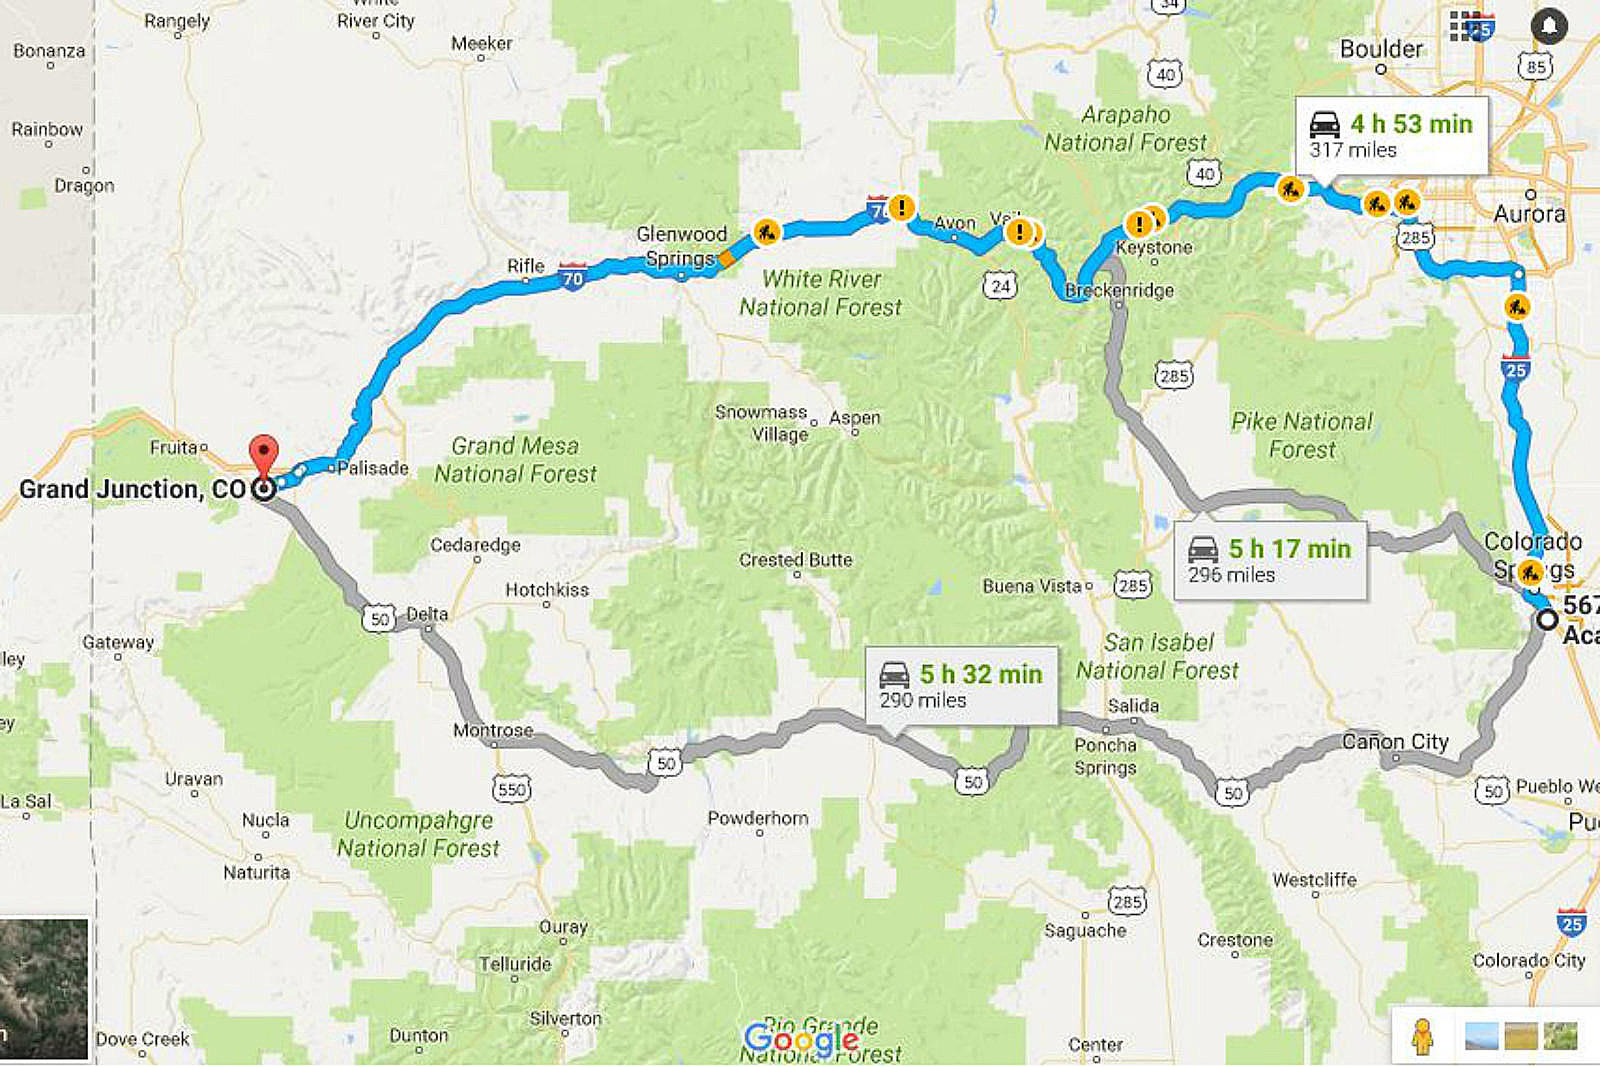 This is the Way to Drive from Grand Junction to Colorado Springs Map Colorado Springs on